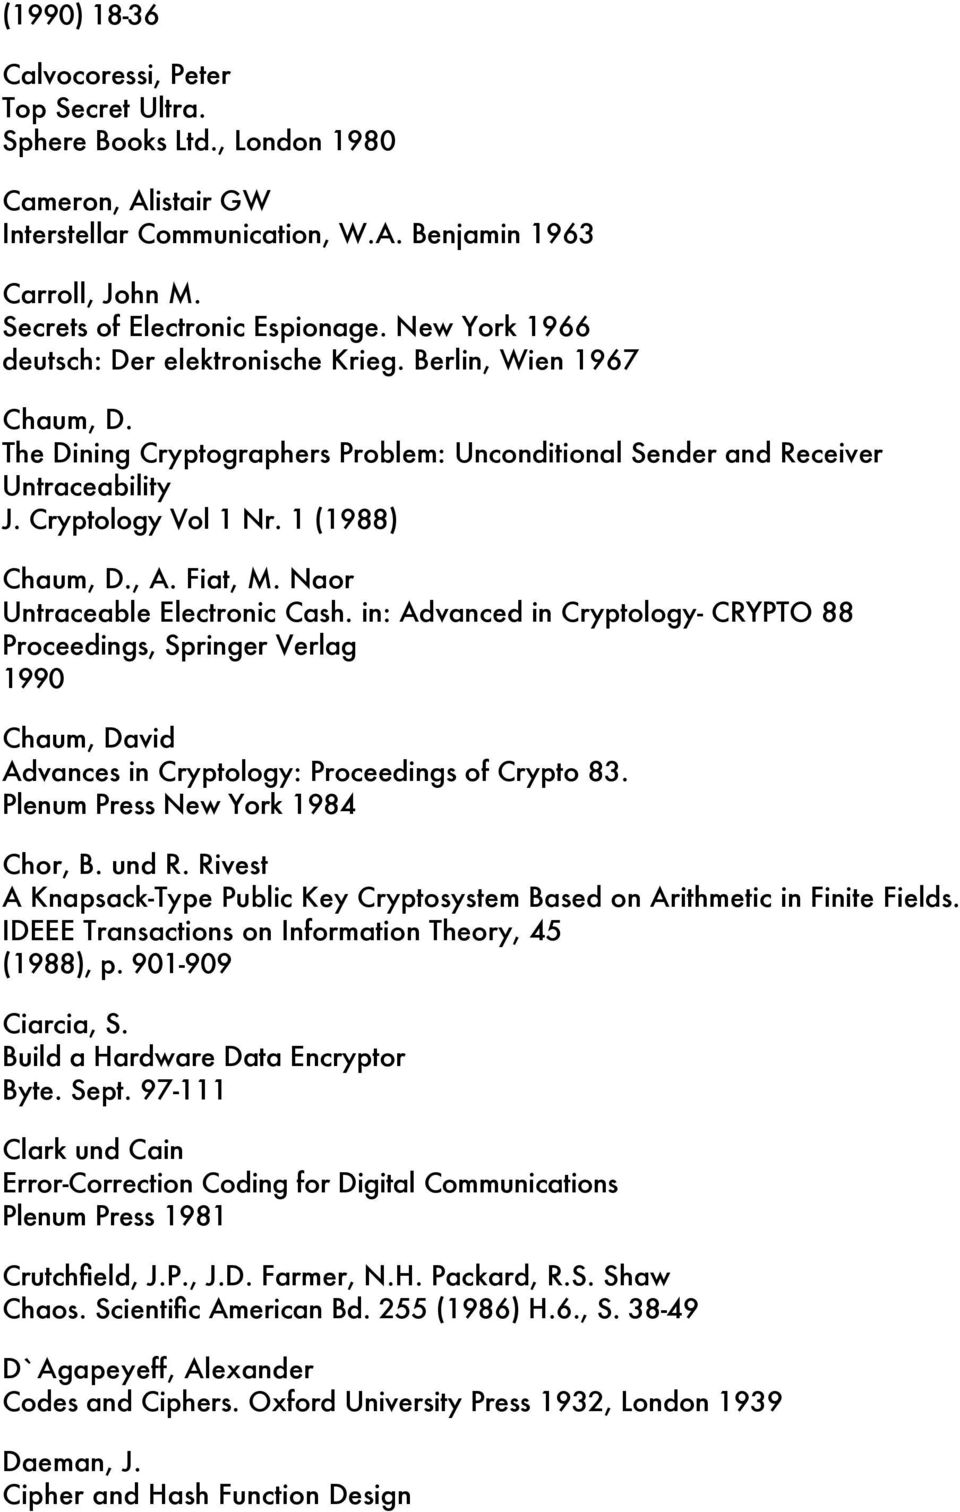 1 (1988) Chaum, D., A. Fiat, M. Naor Untraceable Electronic Cash. in: Advanced in Cryptology- CRYPTO 88 Proceedings, Springer Verlag 1990 Chaum, David Advances in Cryptology: Proceedings of Crypto 83.